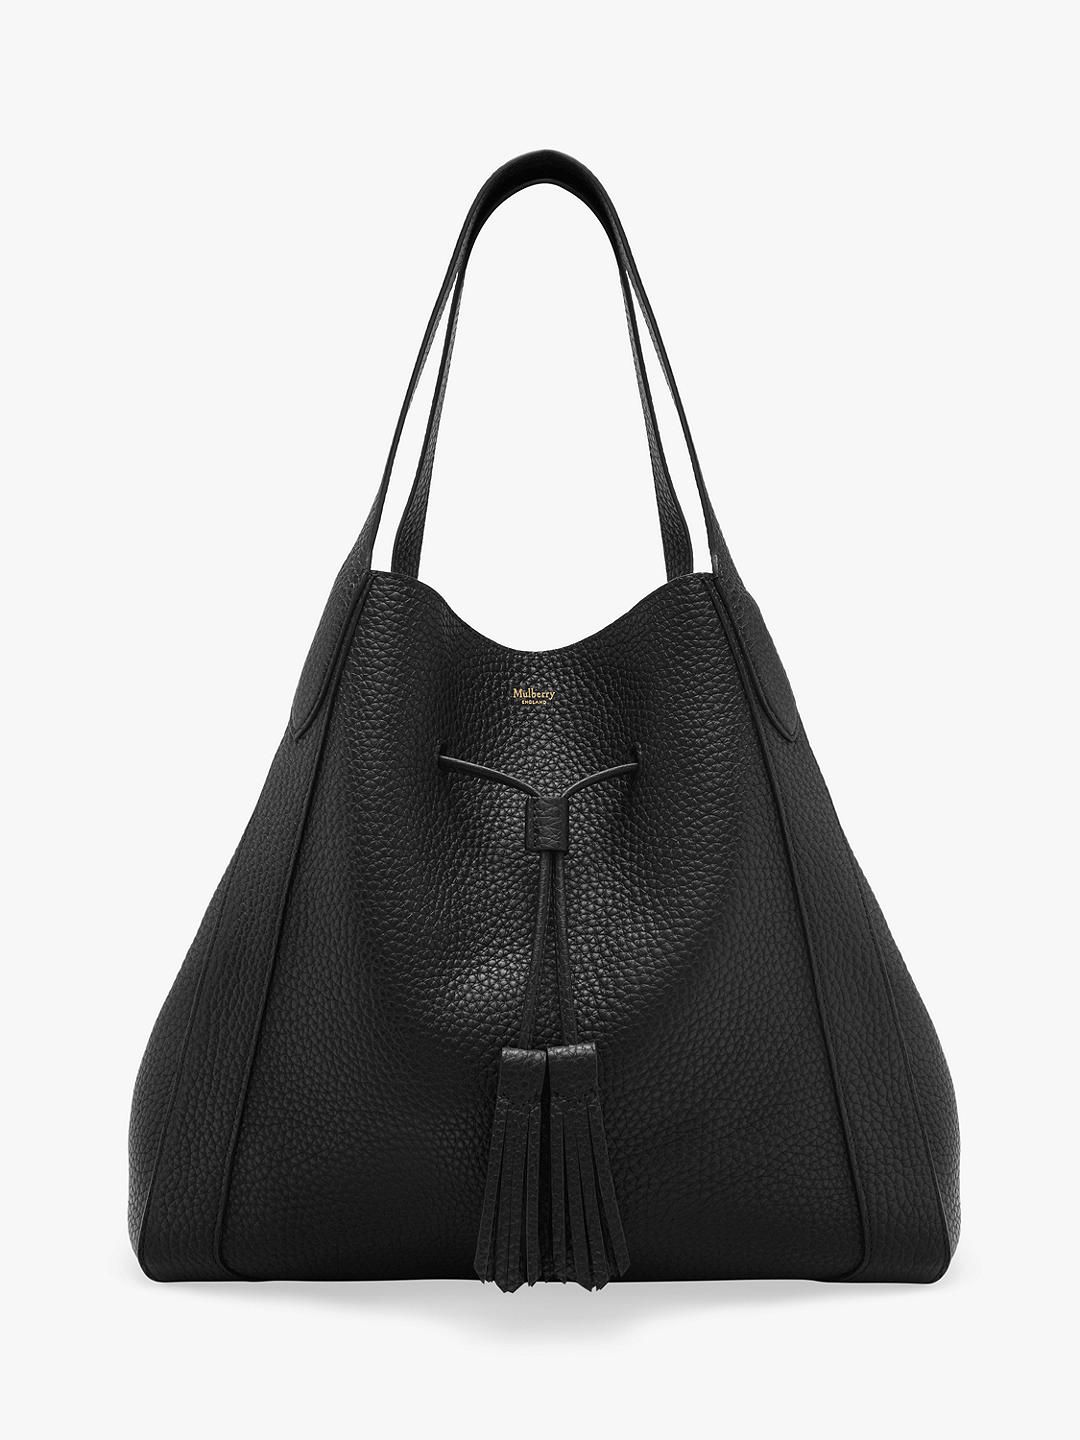 Mulberry Millie Heavy Grain Leather Tote Bag, Black #mulberrybag